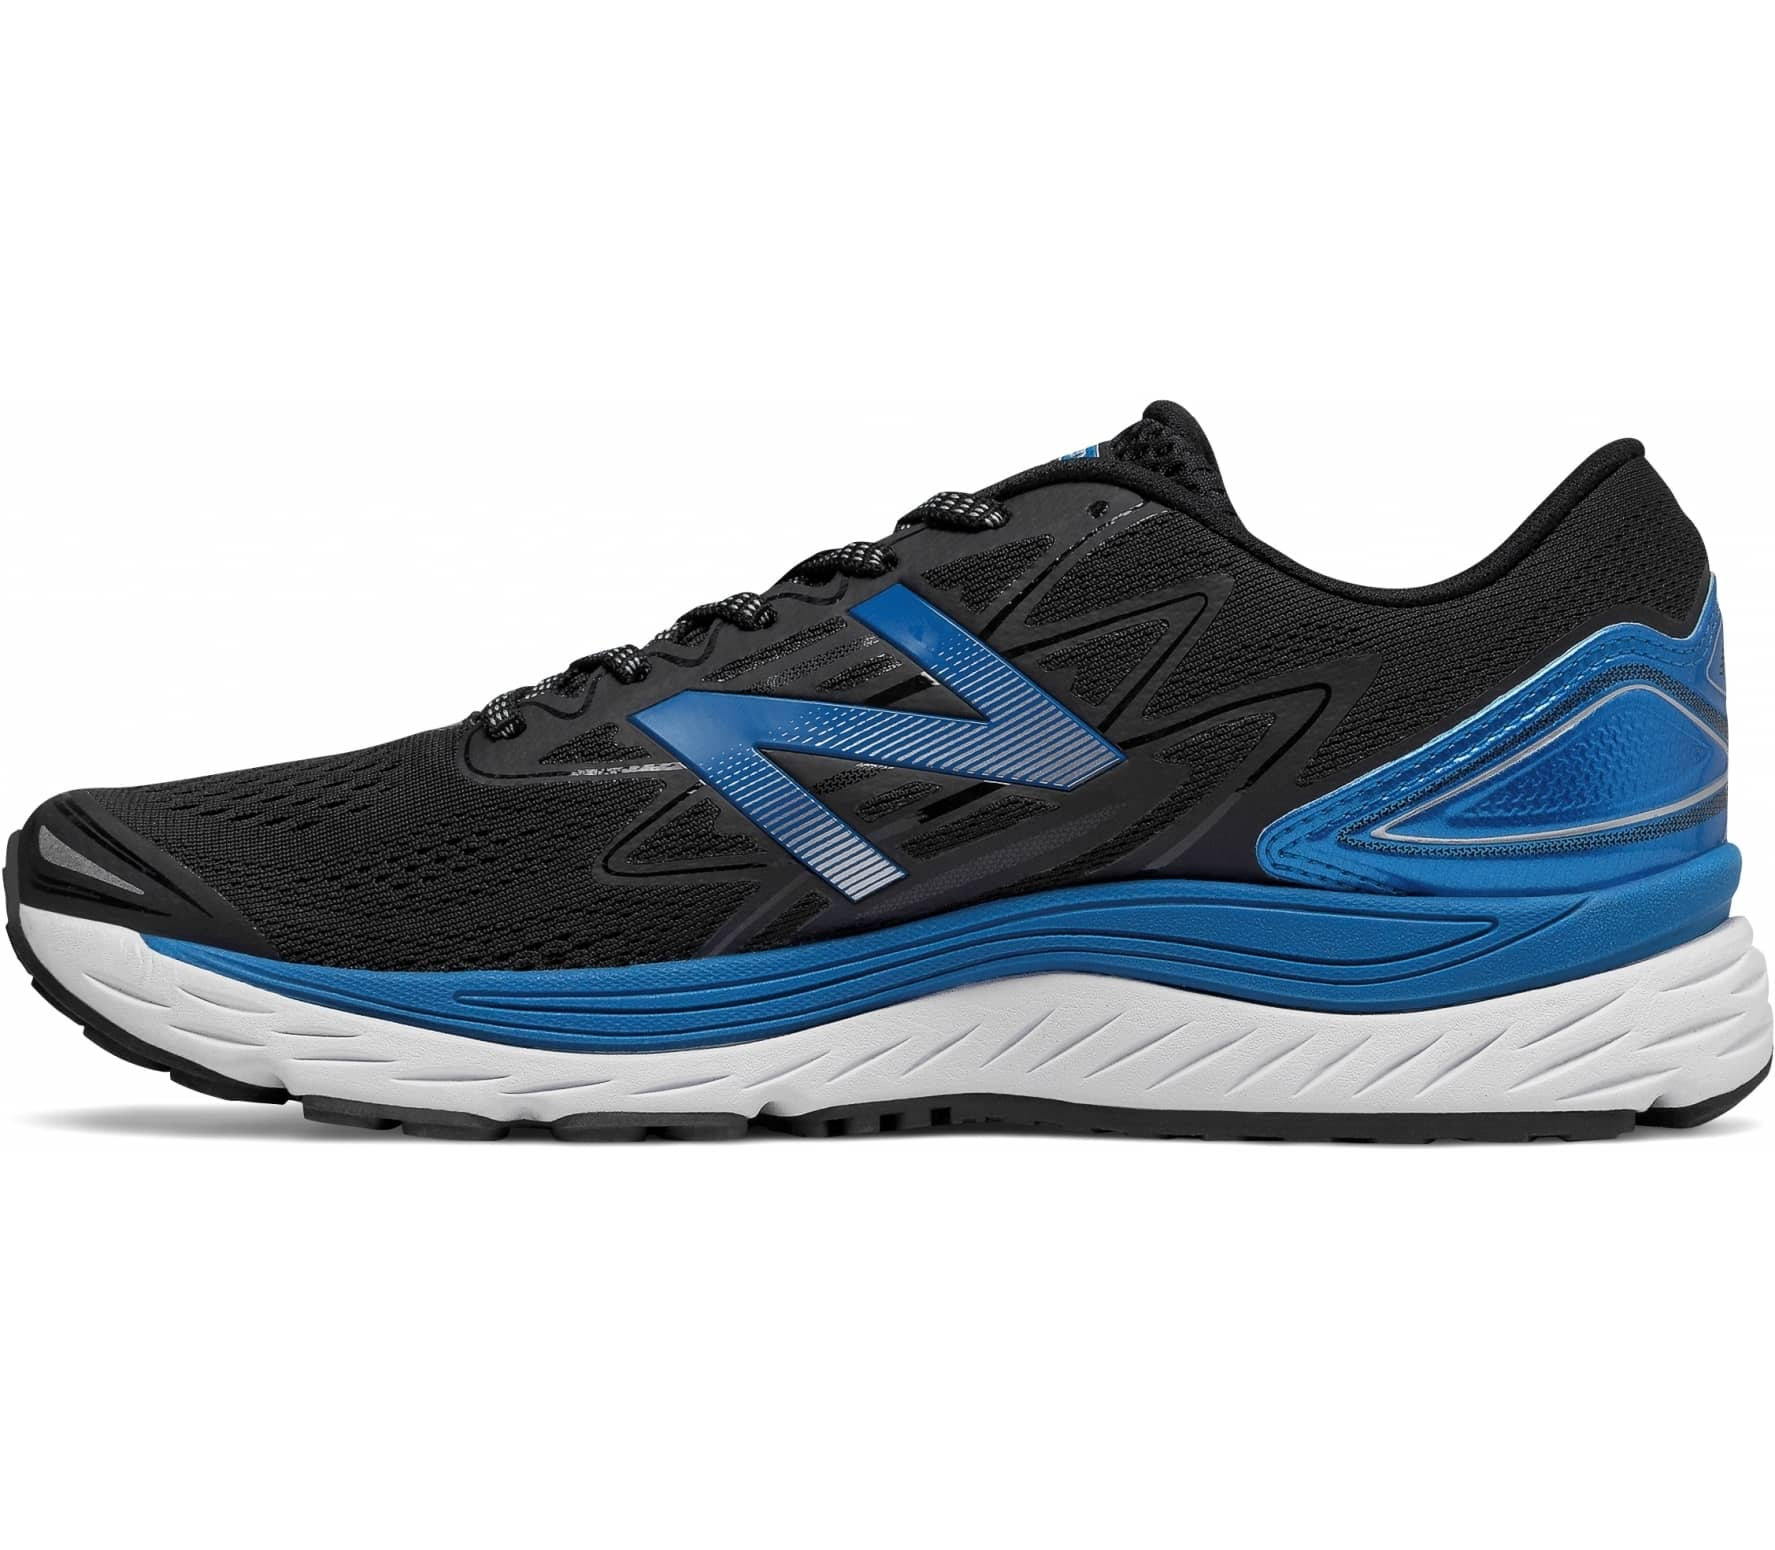 New Balance - Solvi men's running shoes (black/blue) - buy ...